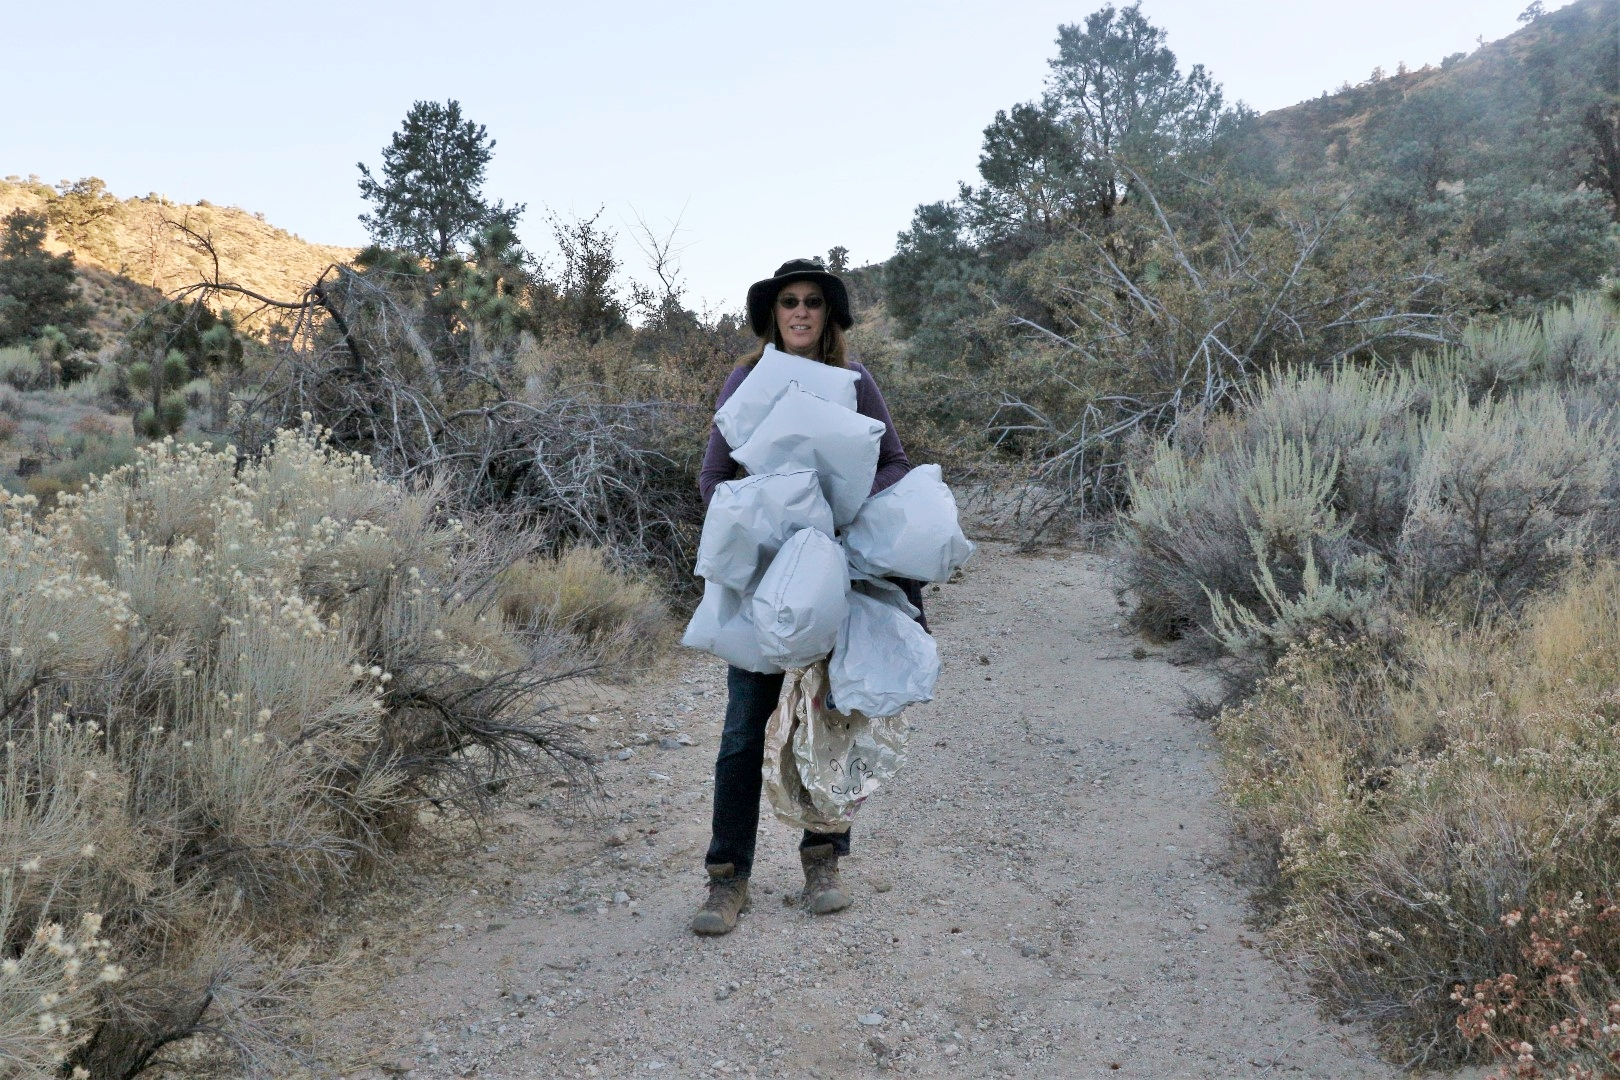 These balloons were found in our Puma Canyon Ecological Reserve in Pinon Hills